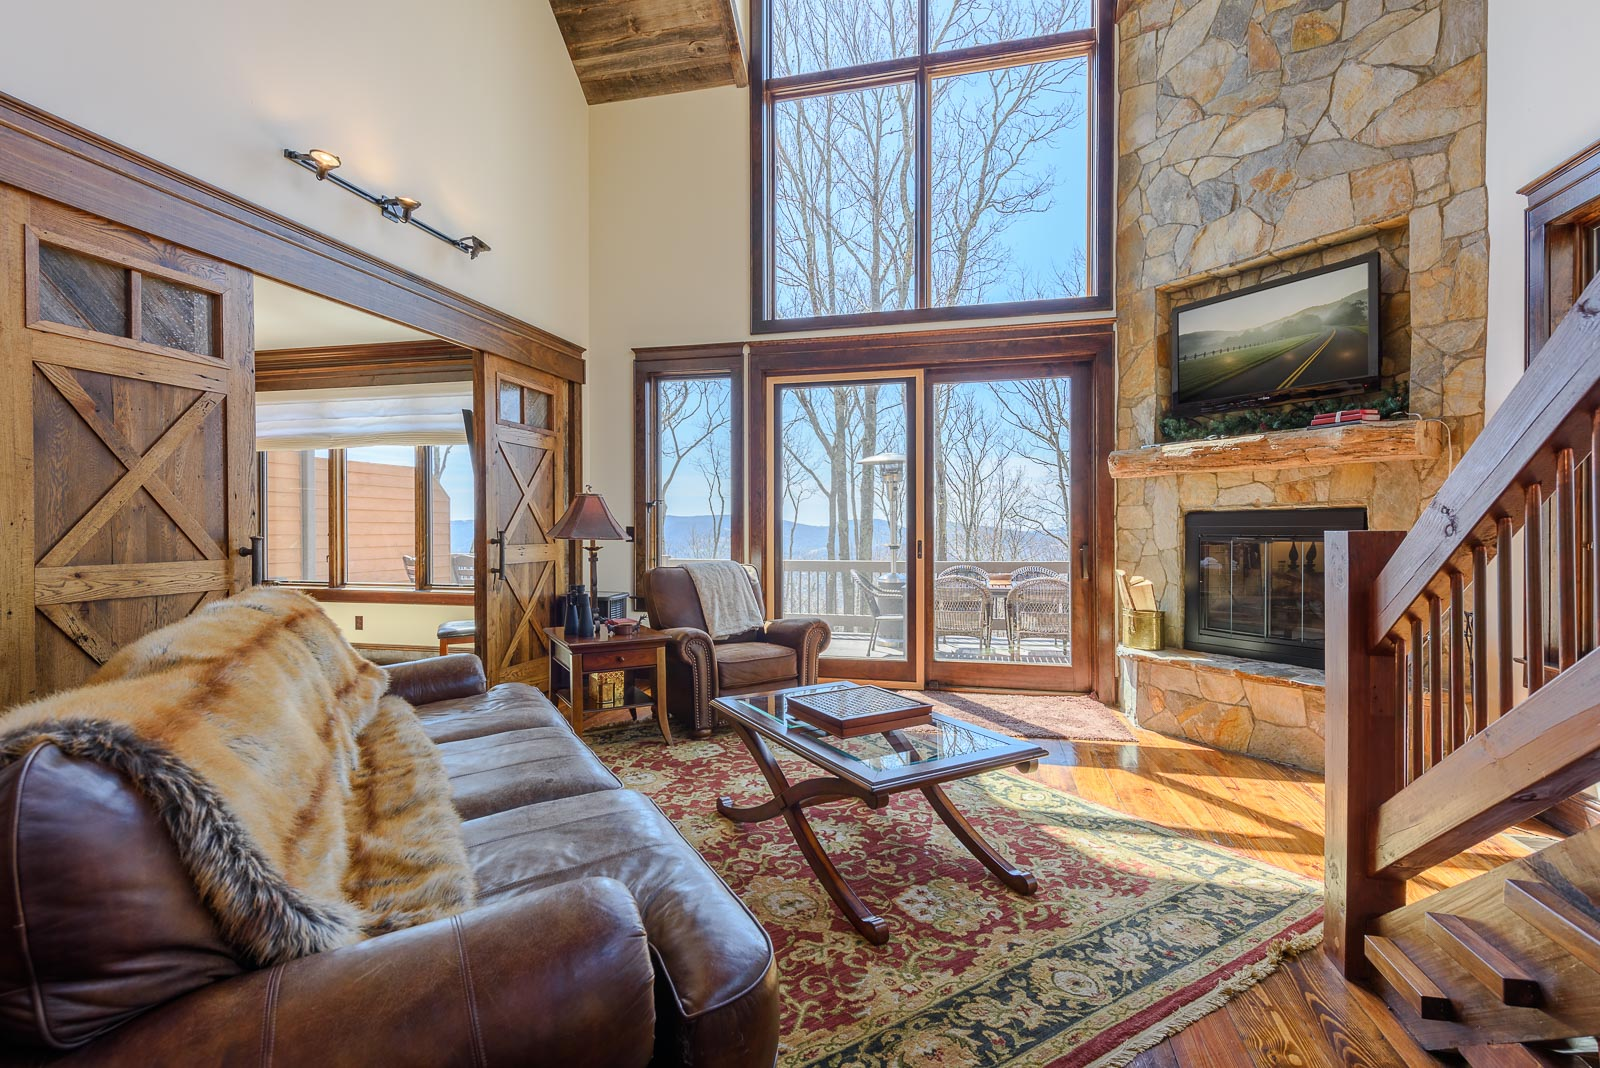 starts beech mountain cabin nc rentals blowing cabins vacation banner elk rock here your boone